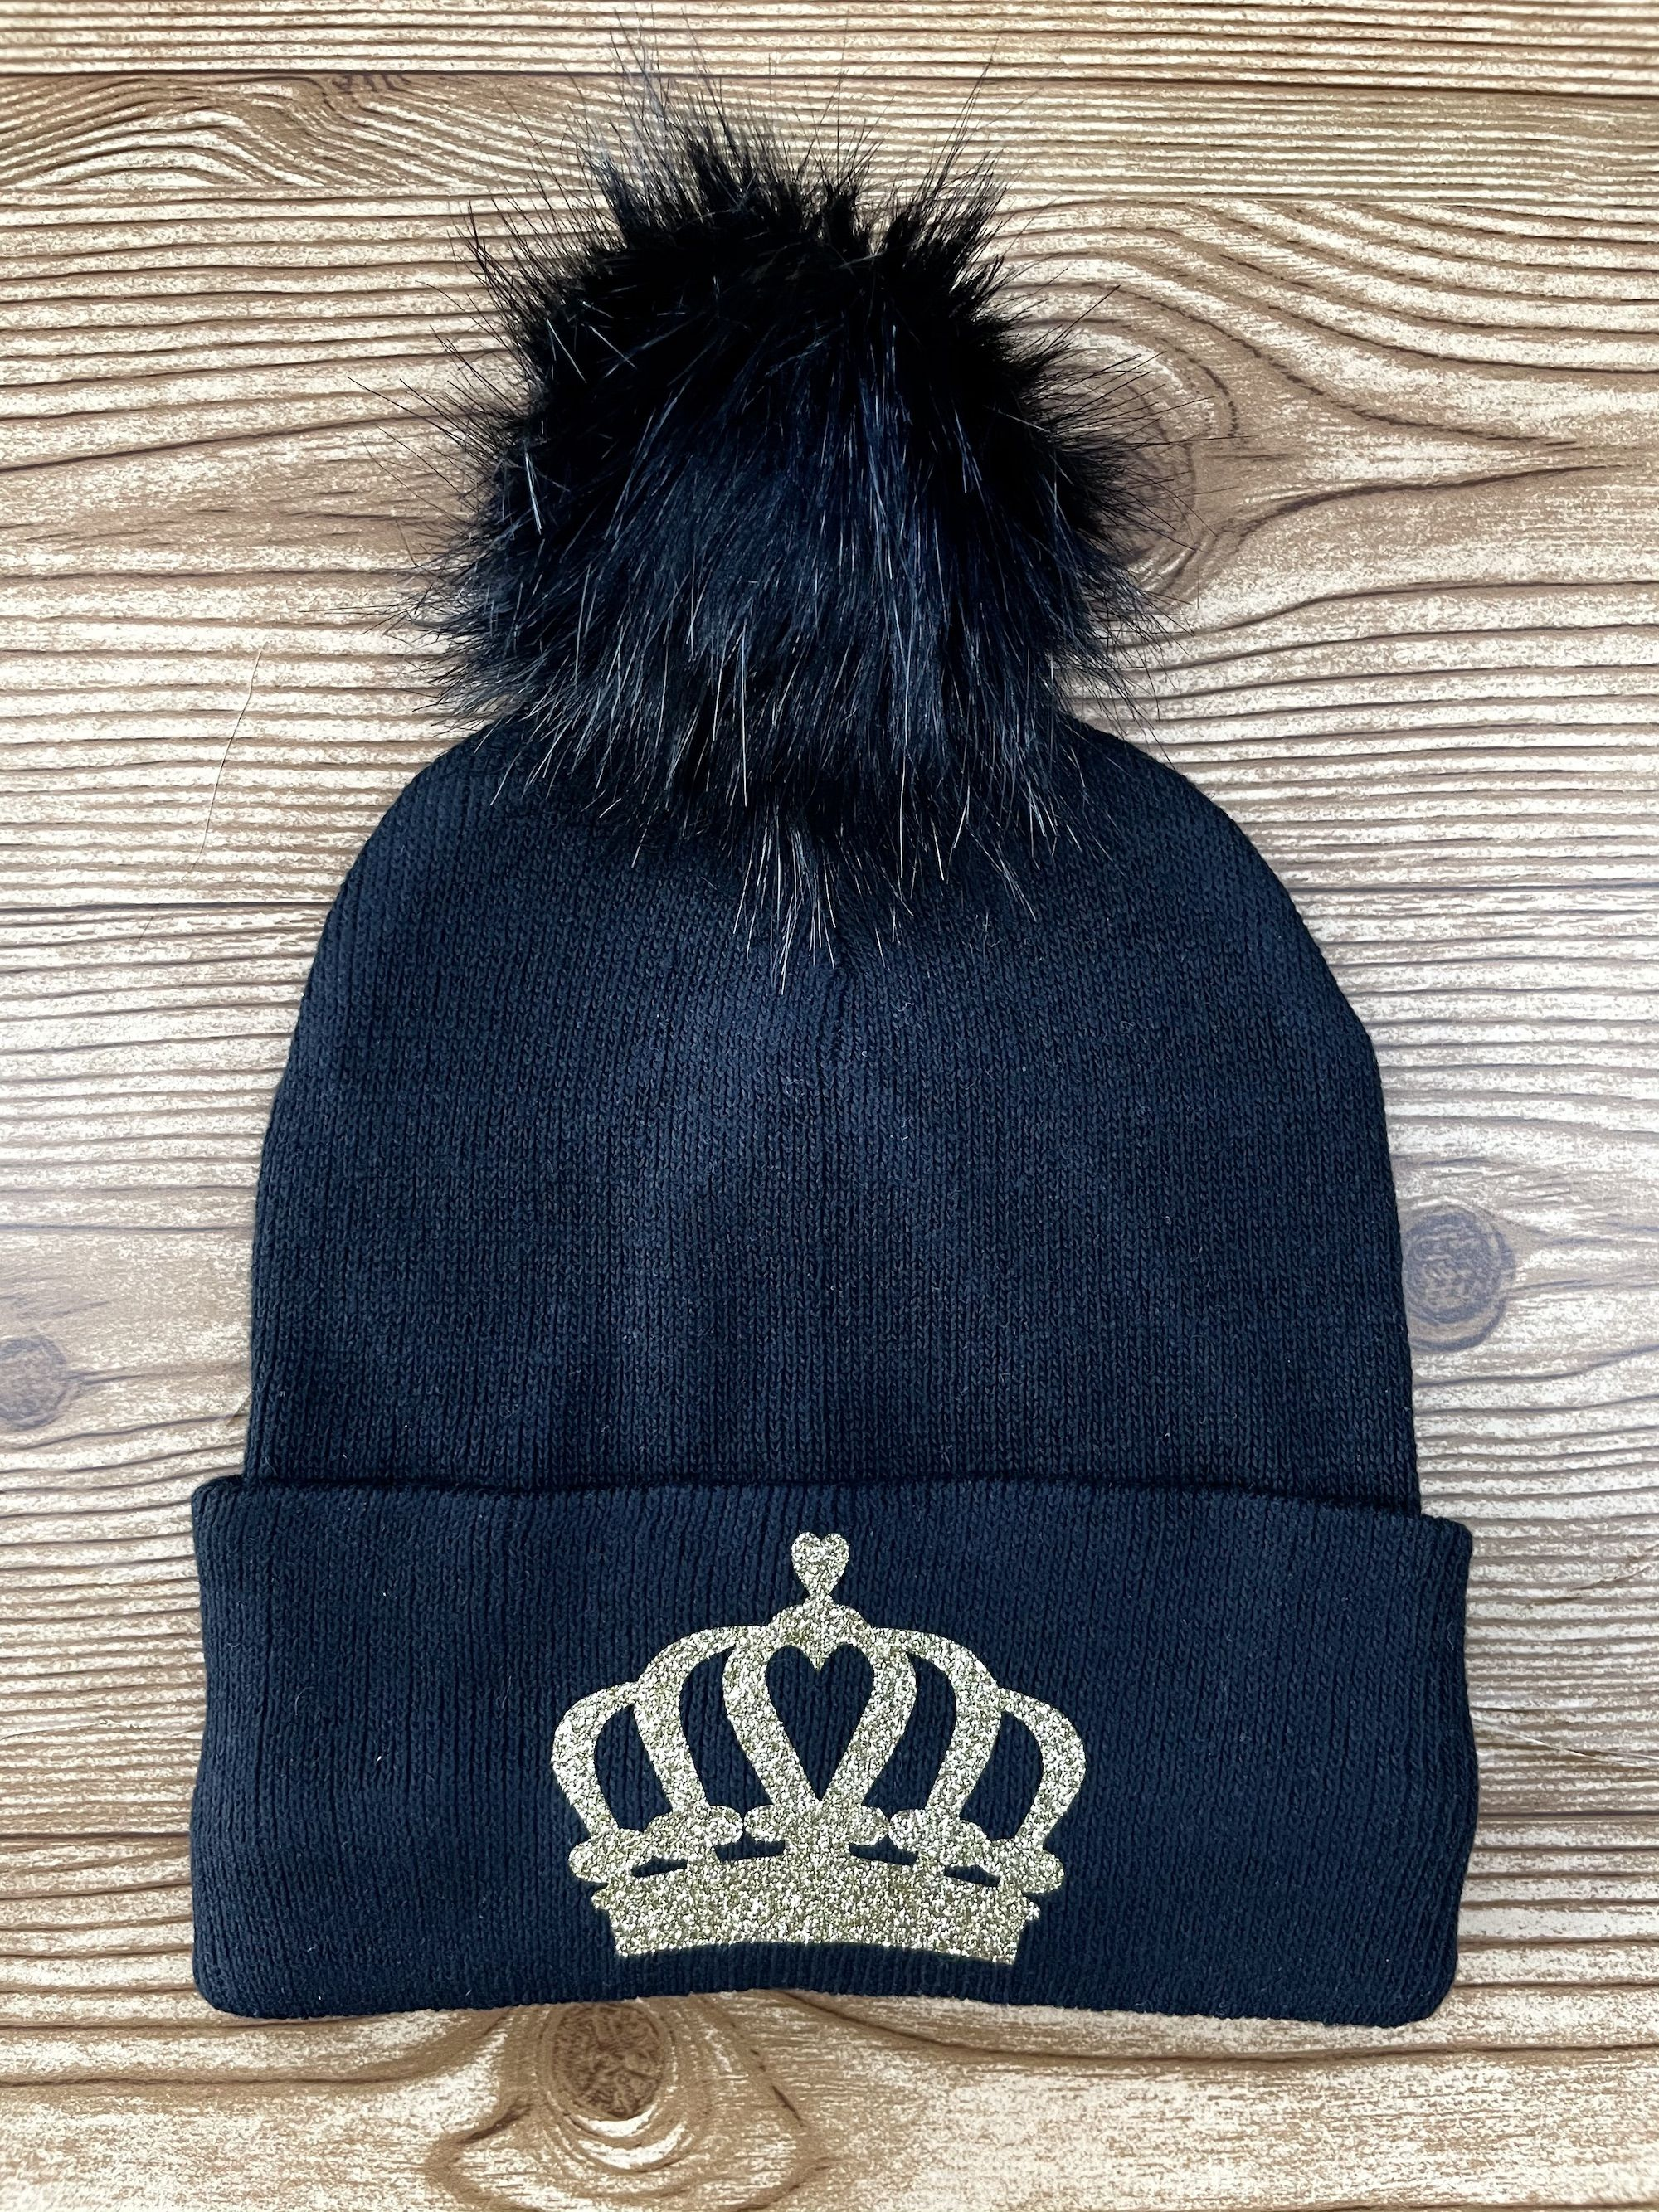 Women/'s Winter Hats Winter Hats for Women and Children Gray Knit Hat Beanie with Black Glitter Crown and Pom Pom Black Crown Beanie